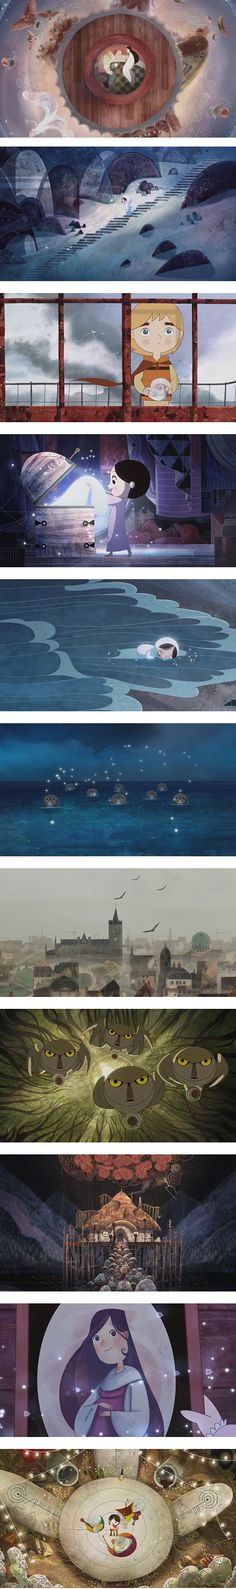 Song of the Sea - <3<3<3<3<33<3<3<3<3<3